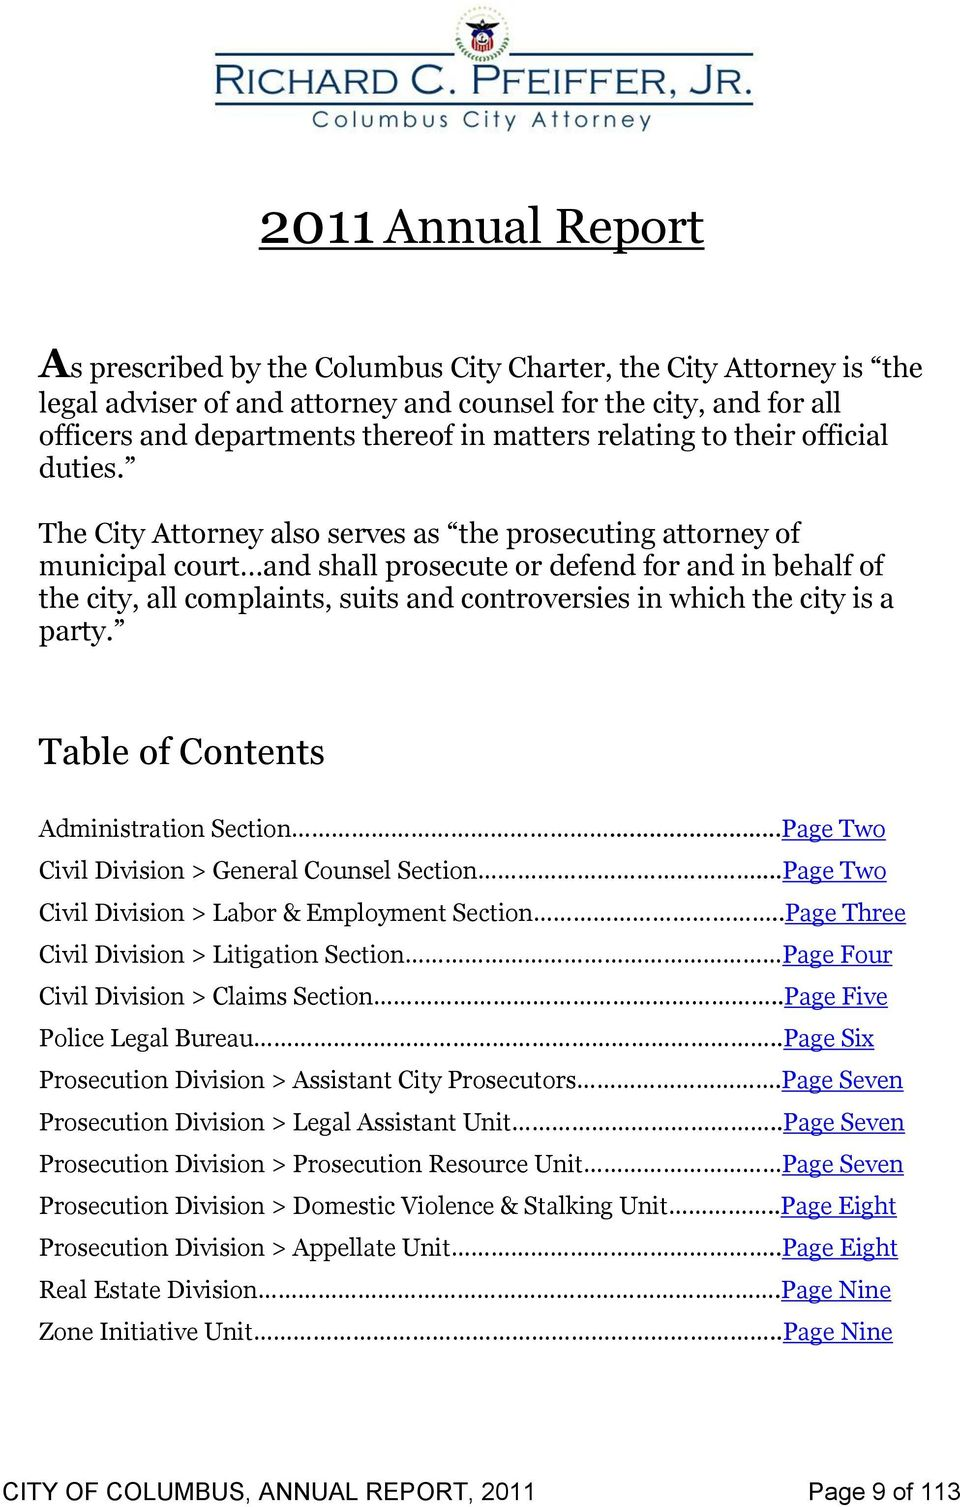 The City Attorney also serves as the prosecuting attorney of municipal court and shall prosecute or defend for and in behalf of the city, all complaints, suits and controversies in which the city is